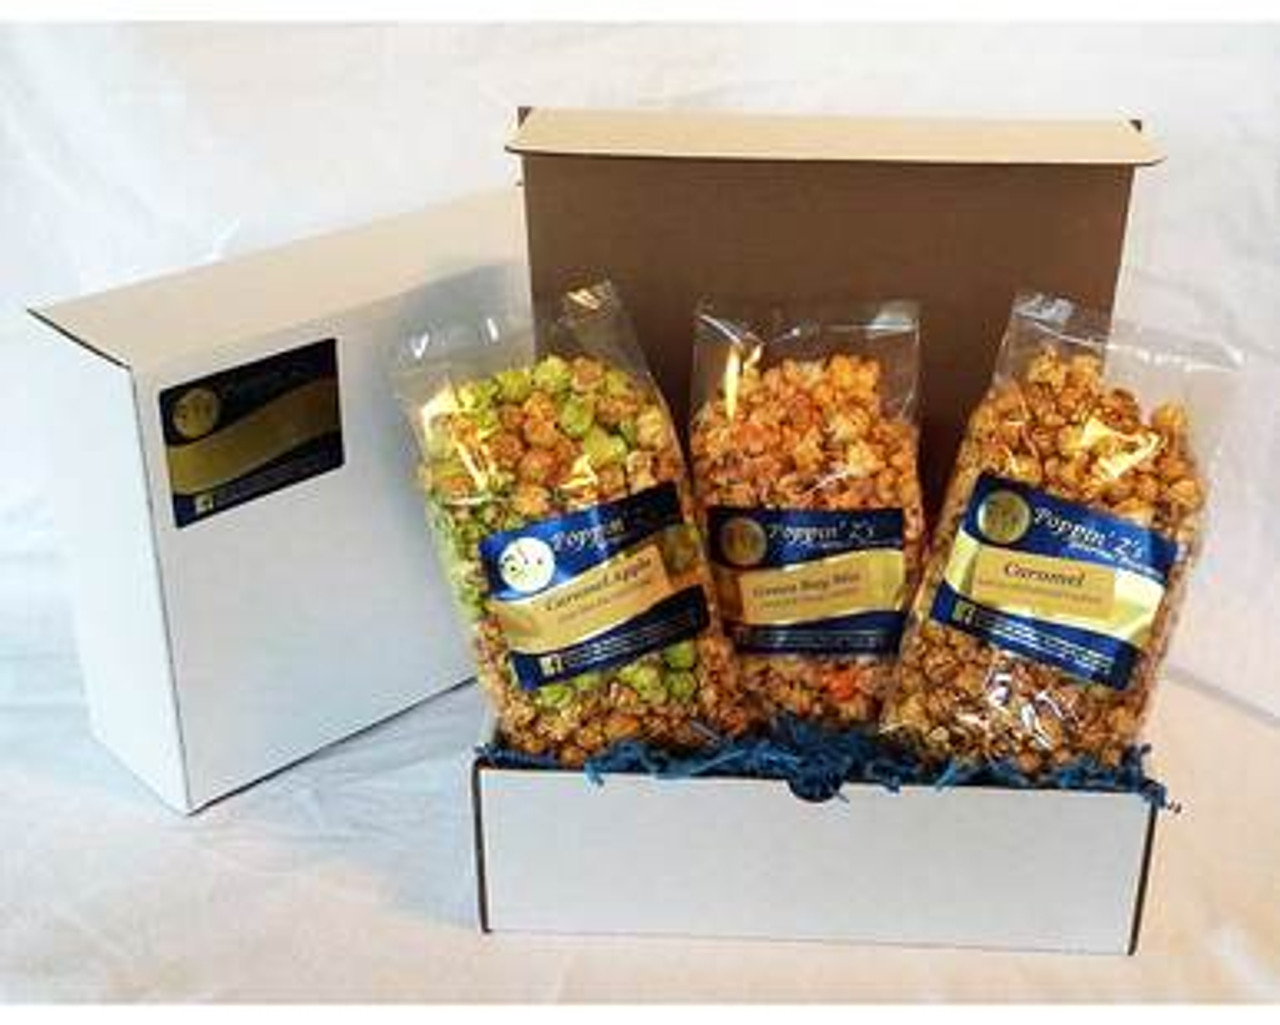 Caramel Lover's Popcorn Gift Pack by Poppin' Z's Gourmet Popcorn at WisconsinMade Artisan Collective